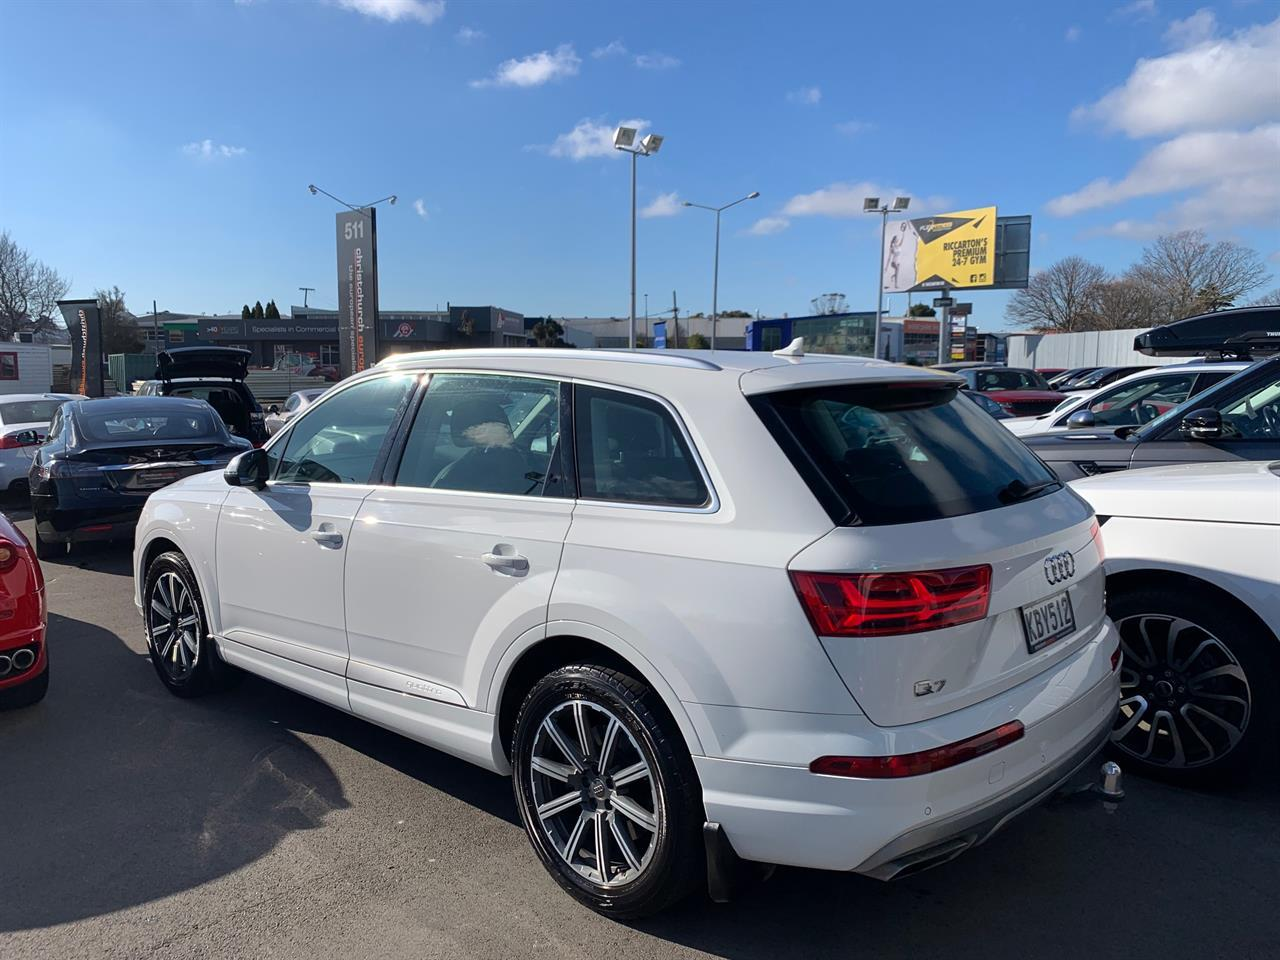 image-2, 2016 Audi Q7 3.0 TDI 200KW 8 Speed New Shape at Christchurch